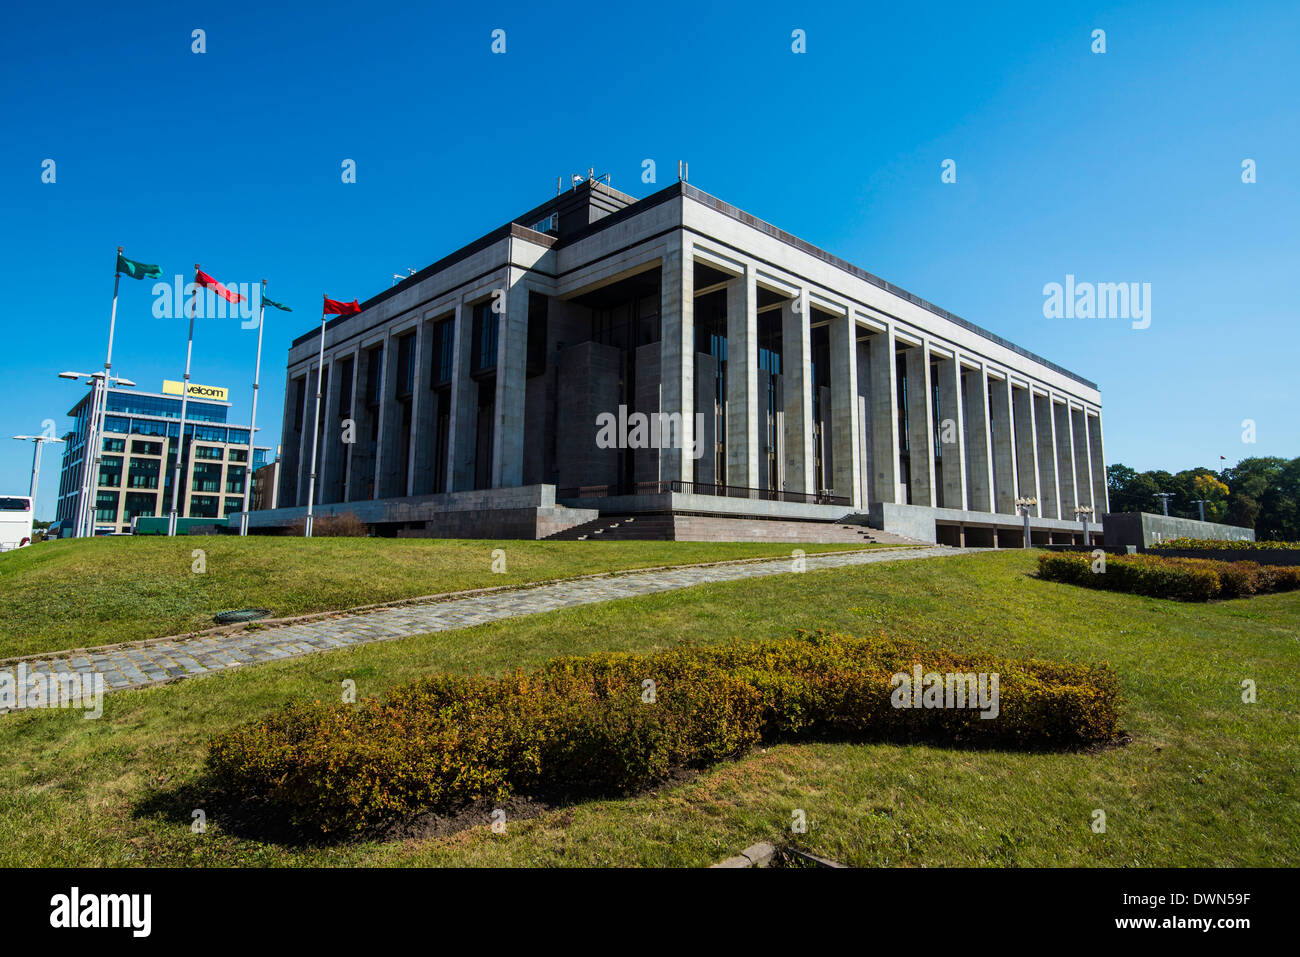 Palace of the Republic, Minsk, Belarus, Europe - Stock Image